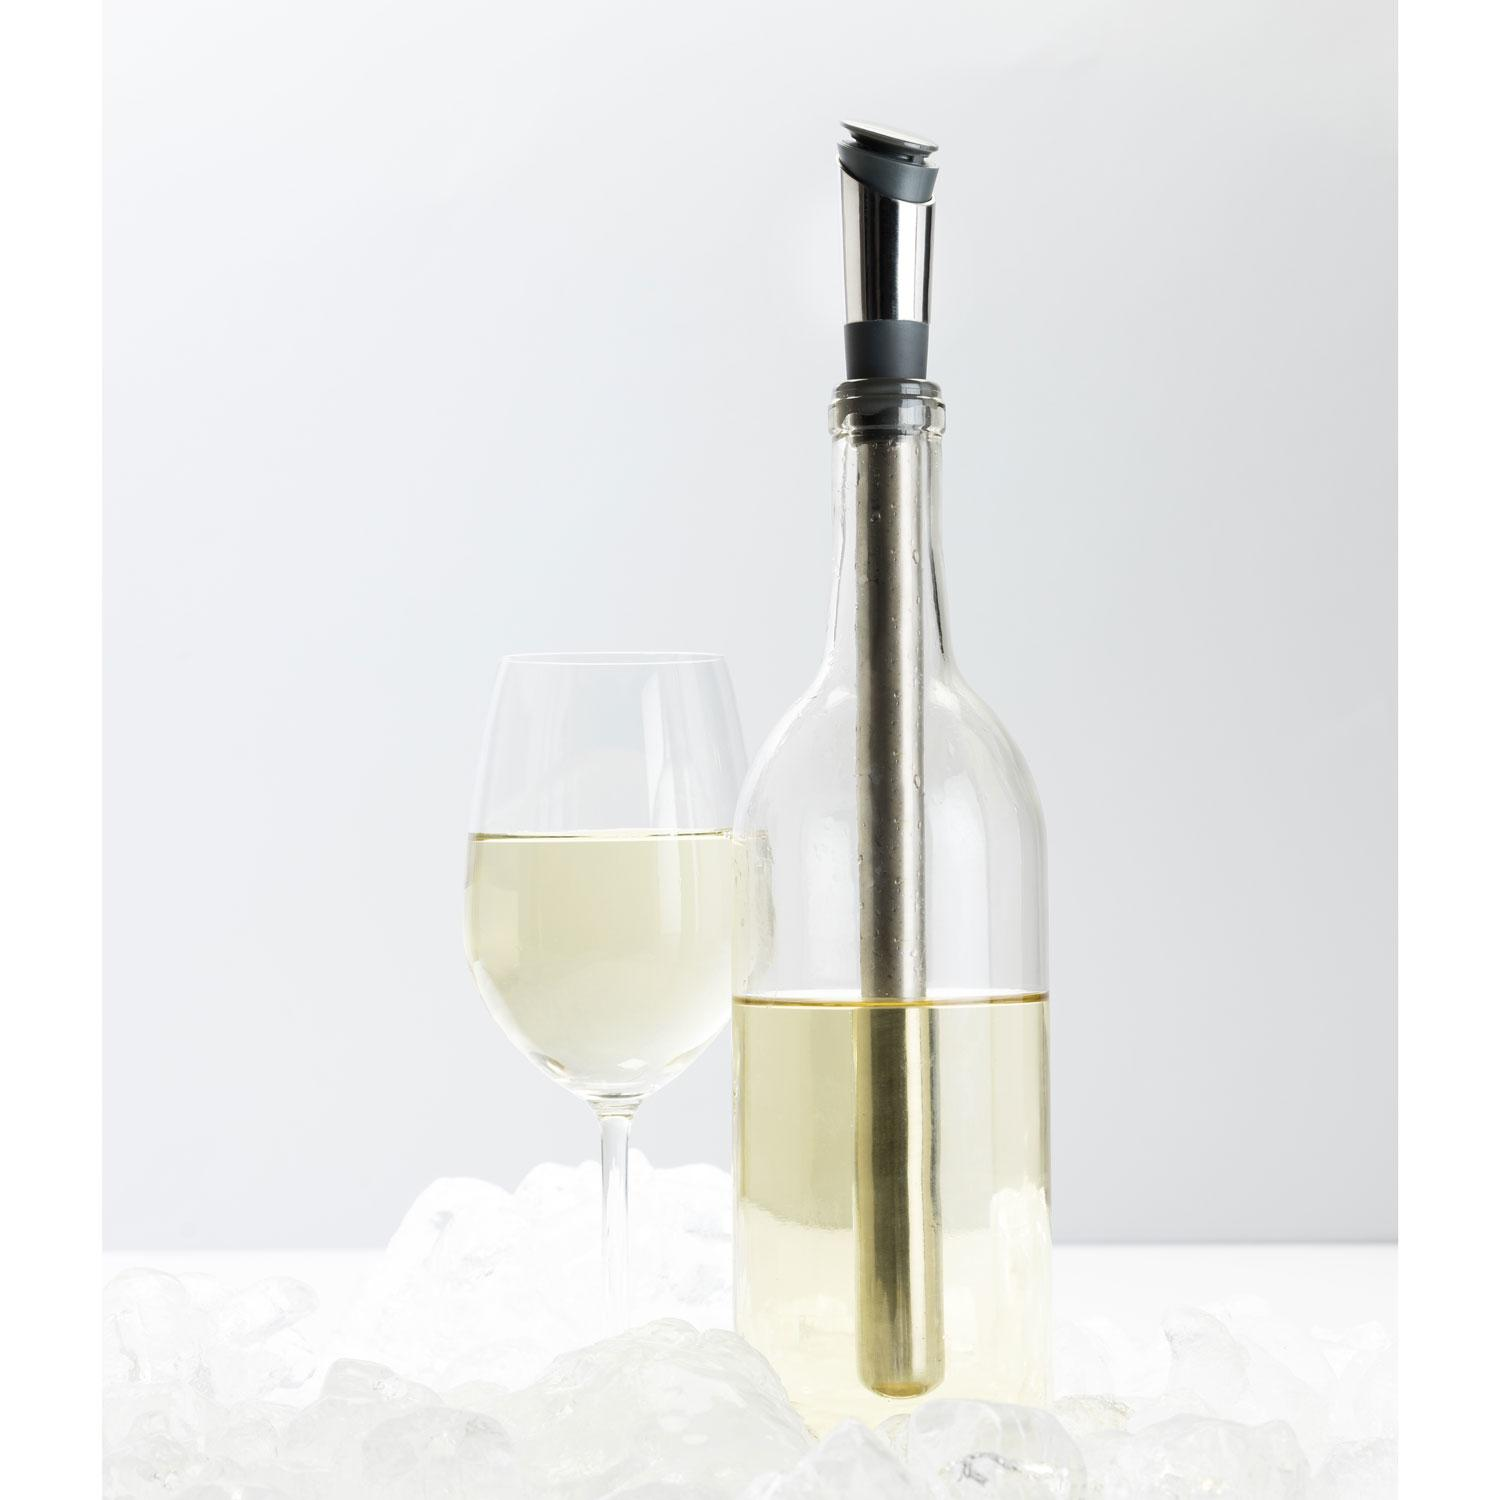 Uberstar Stainless Steel Wine Chill Stick - Only £19.99